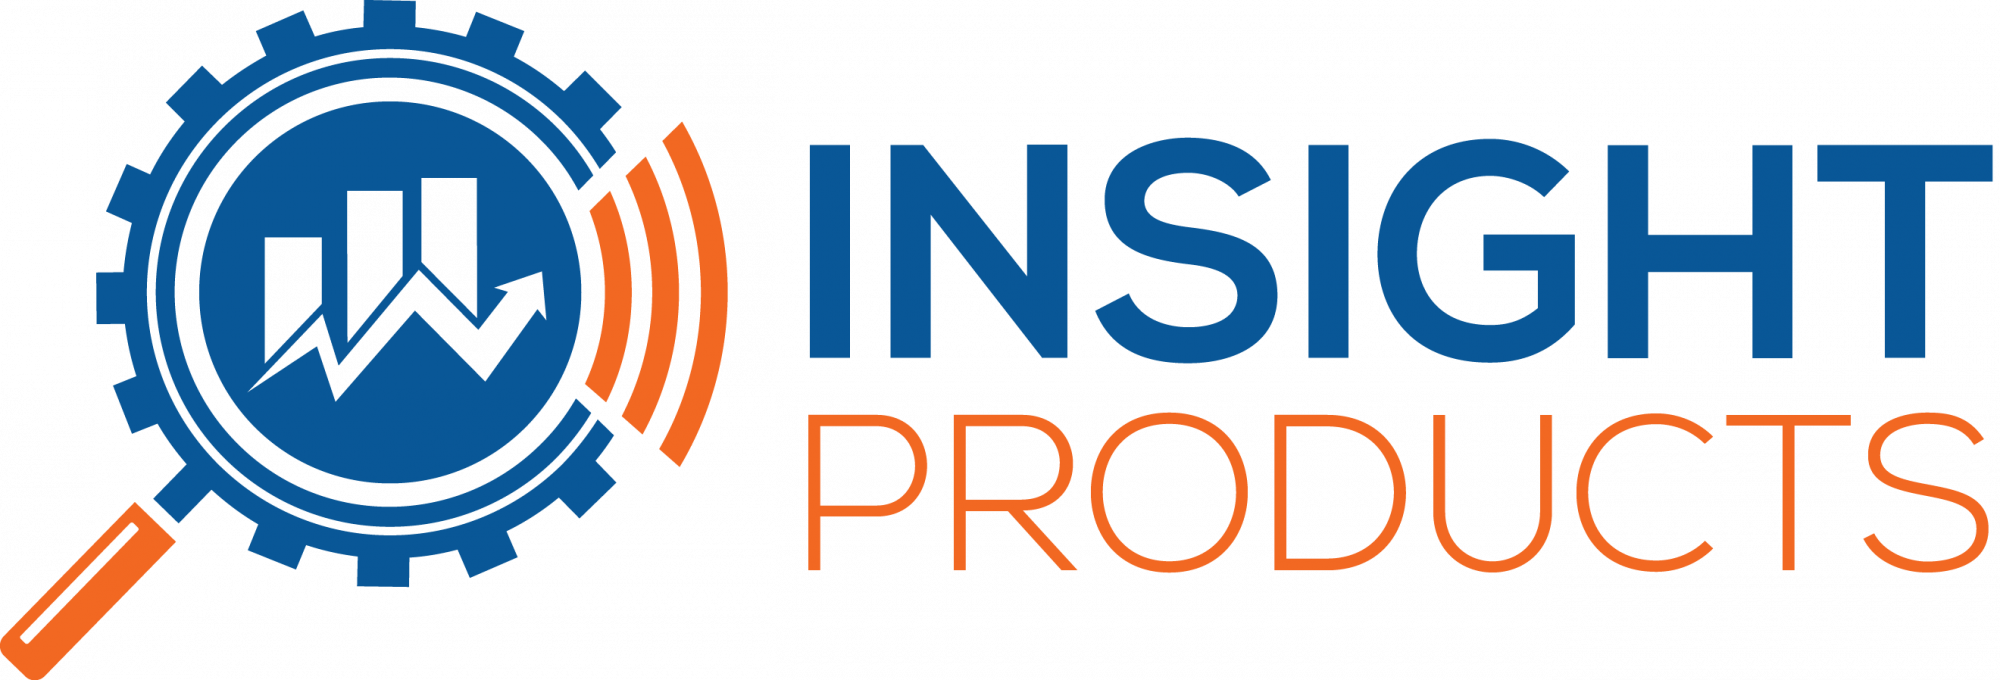 Insight Products.png